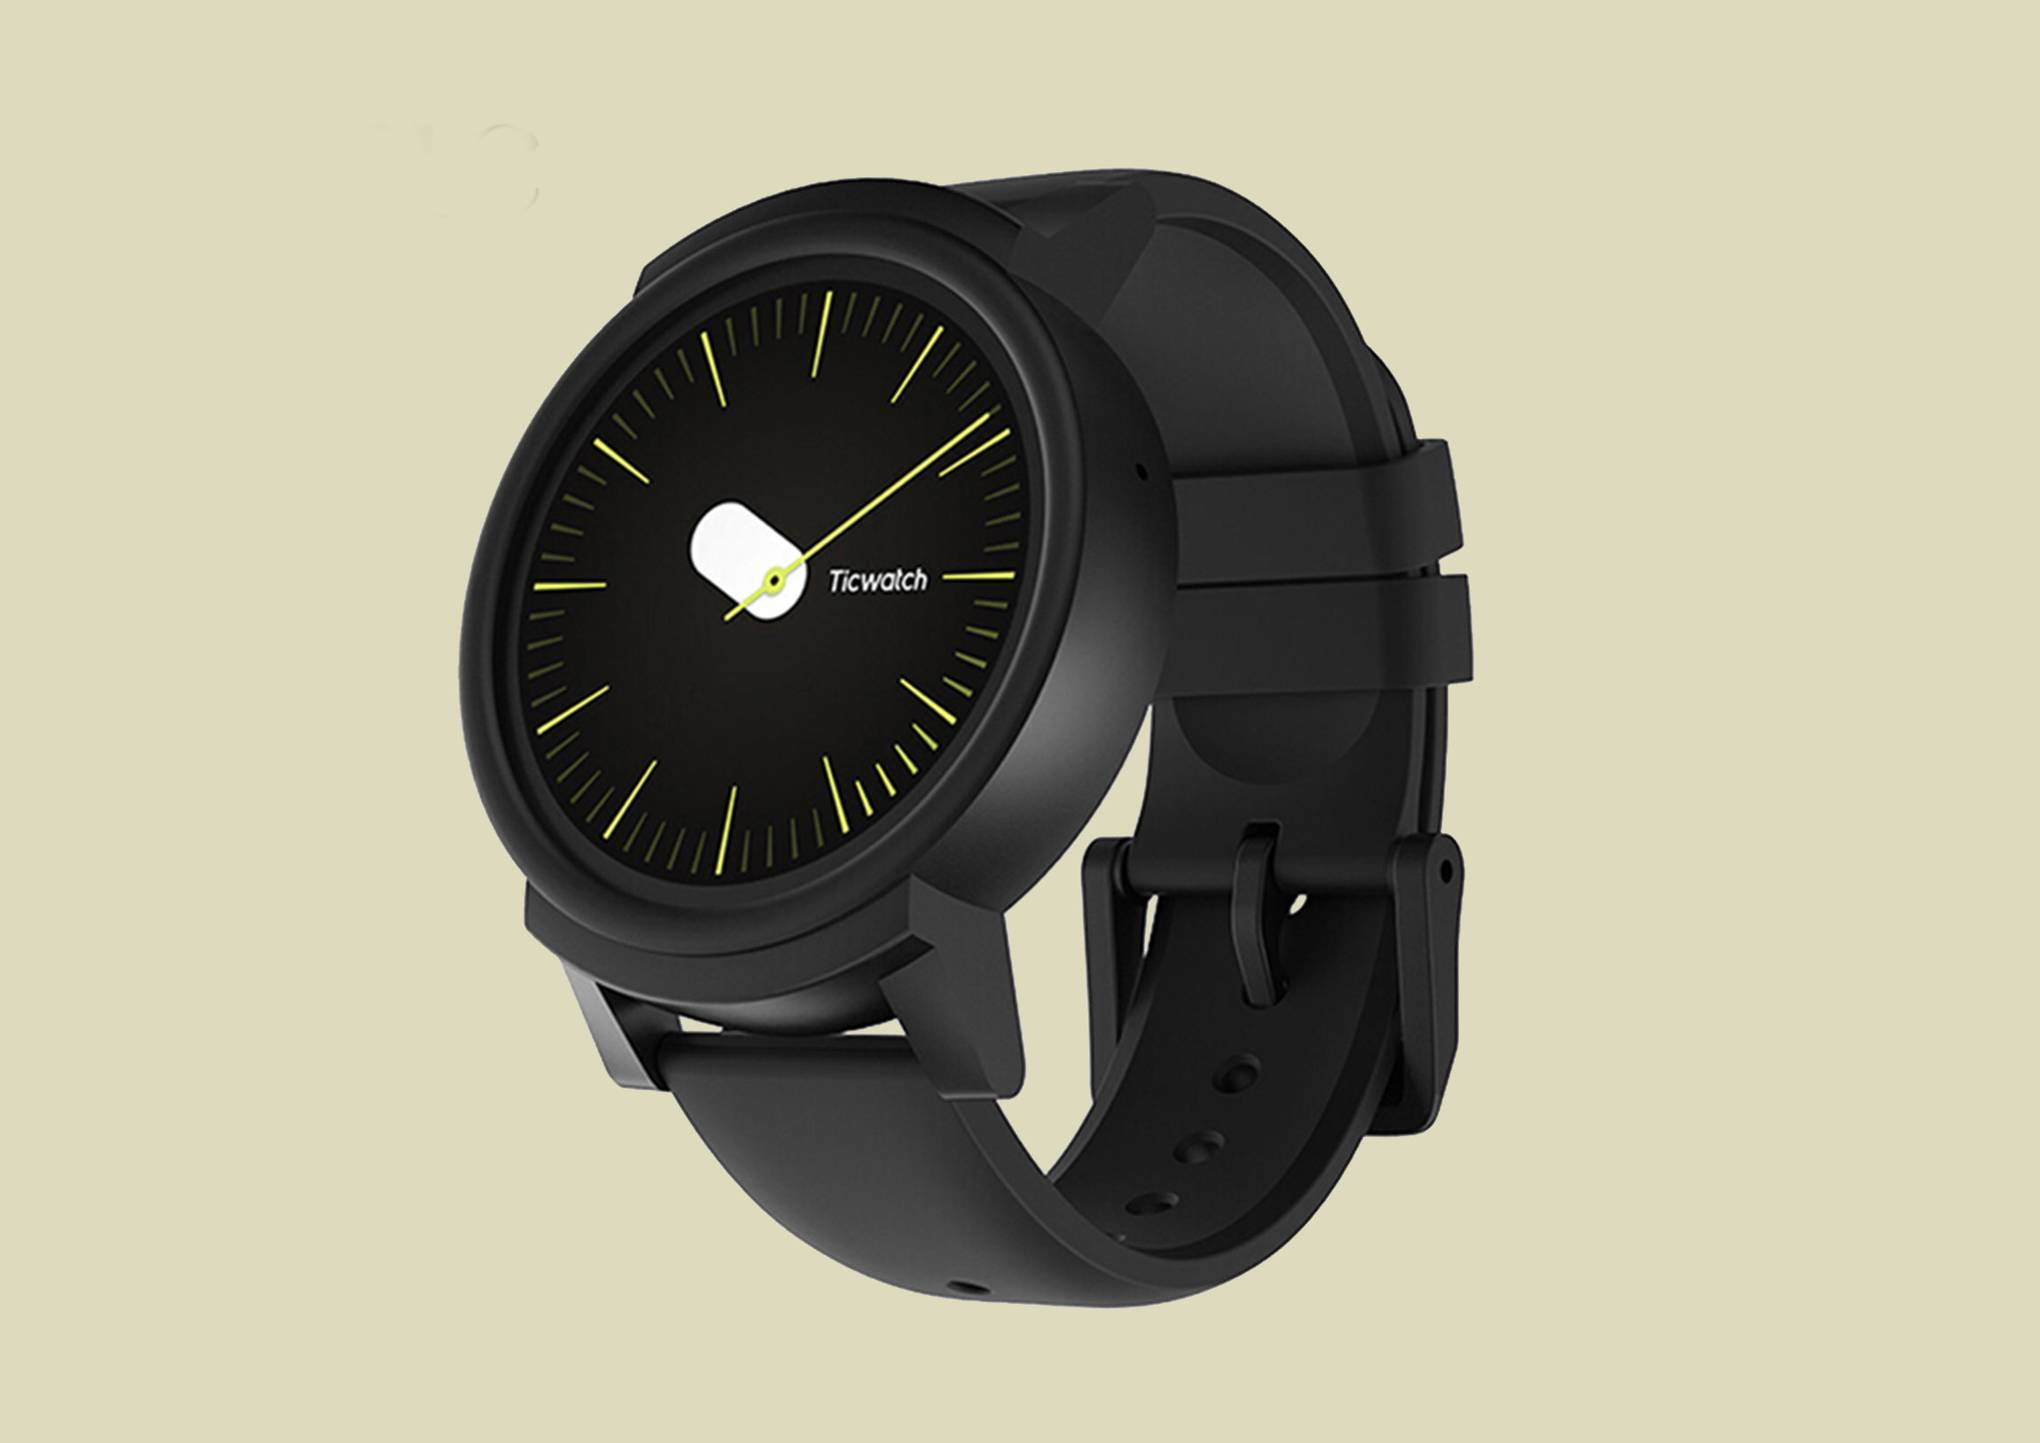 magellan watch card original connection phones with smart mobile slot product android bluetooth support nfc watches for sim phone tf camera smartwatch